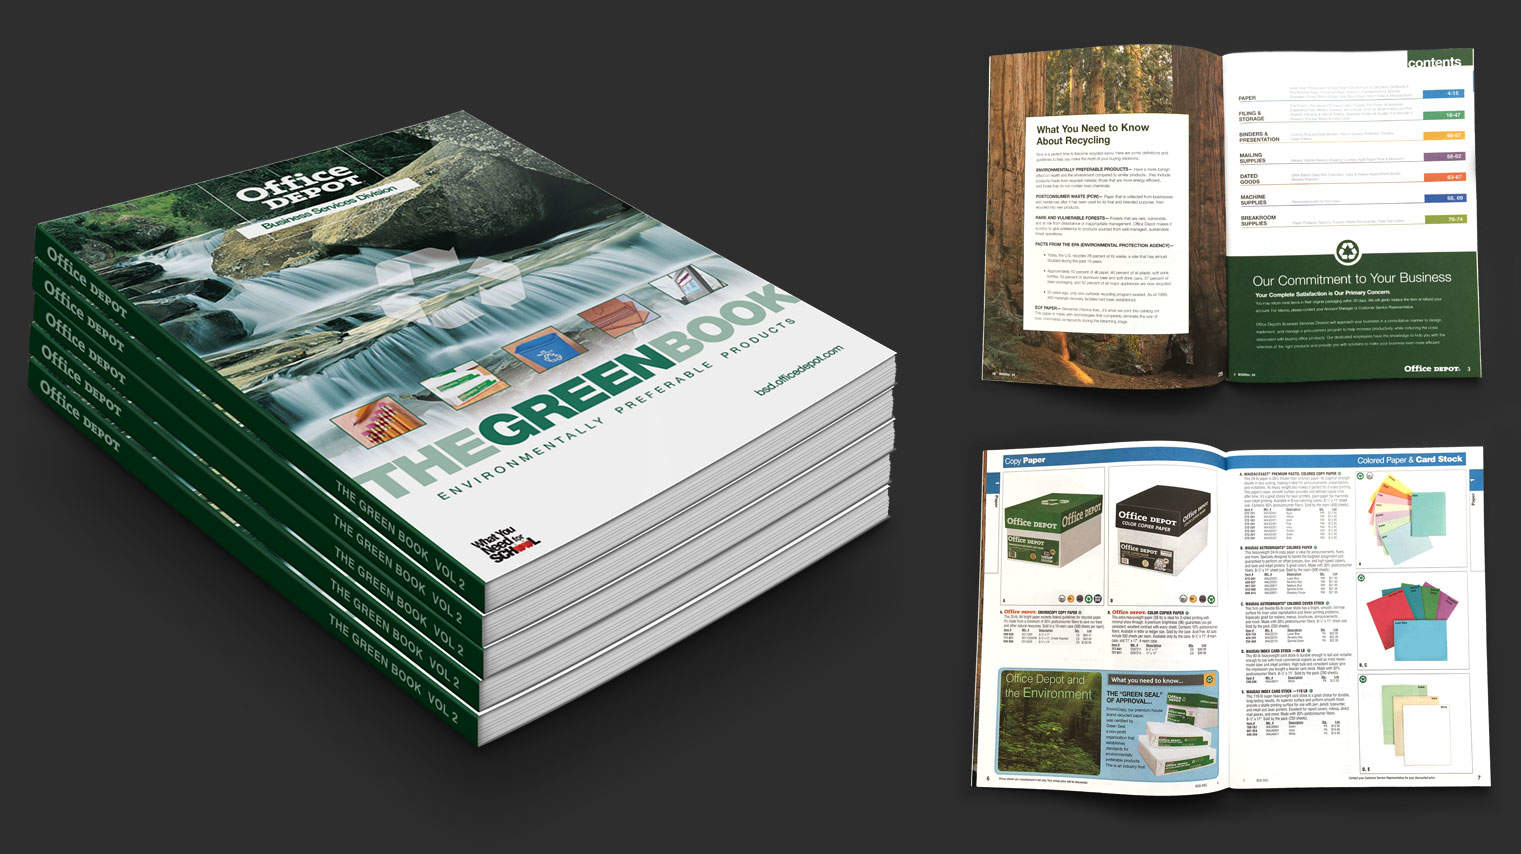 Catalog design continues to change as technology evolves